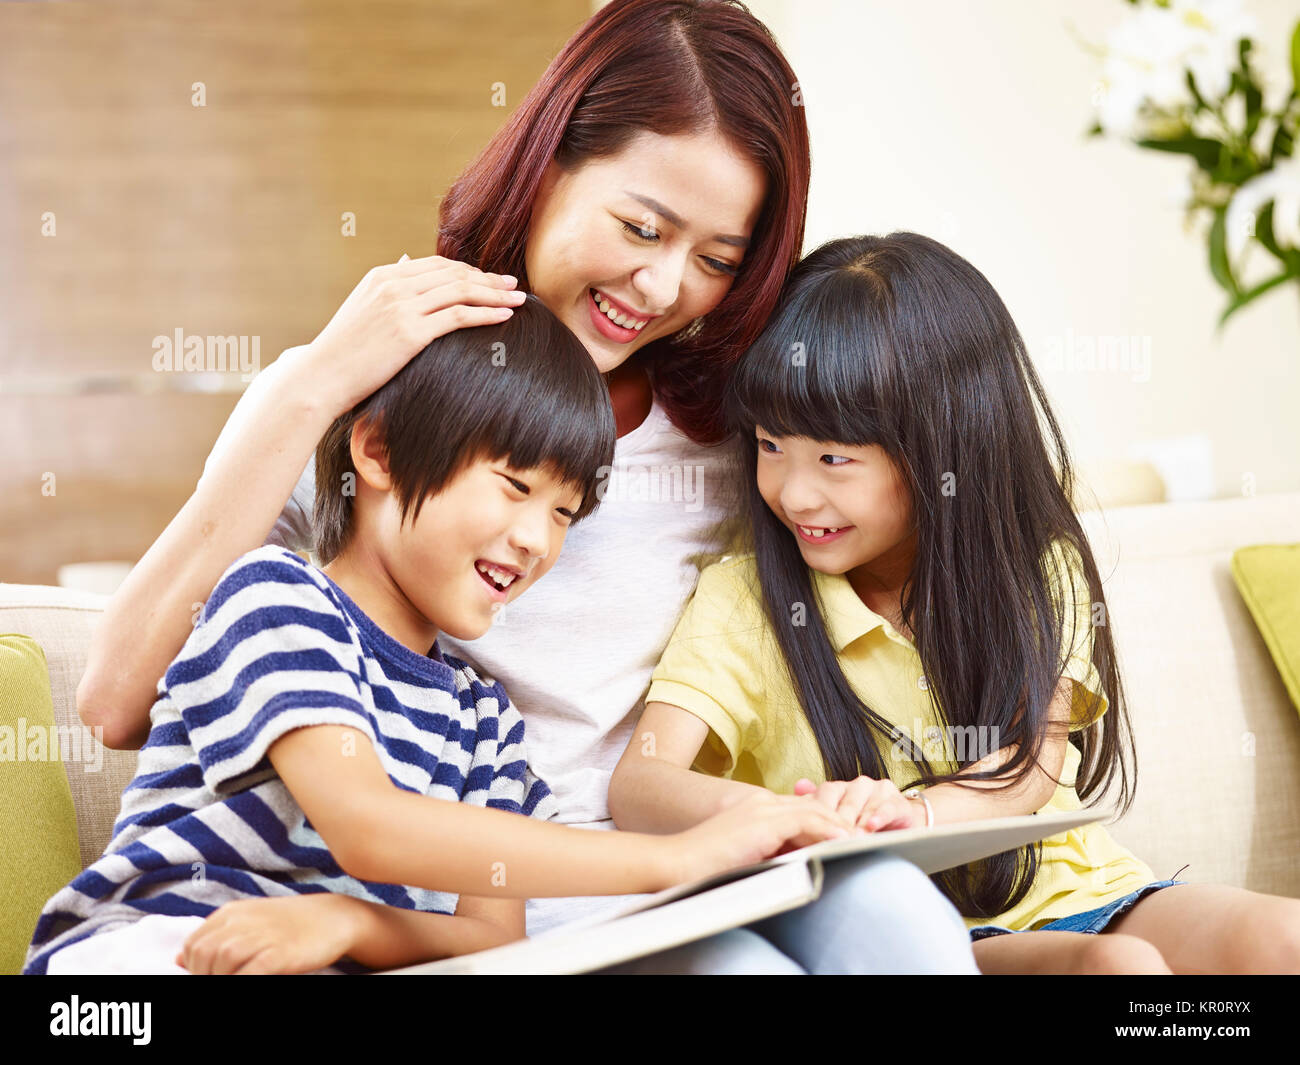 young asian mother sitting on couch at home reading story to two little children. - Stock Image